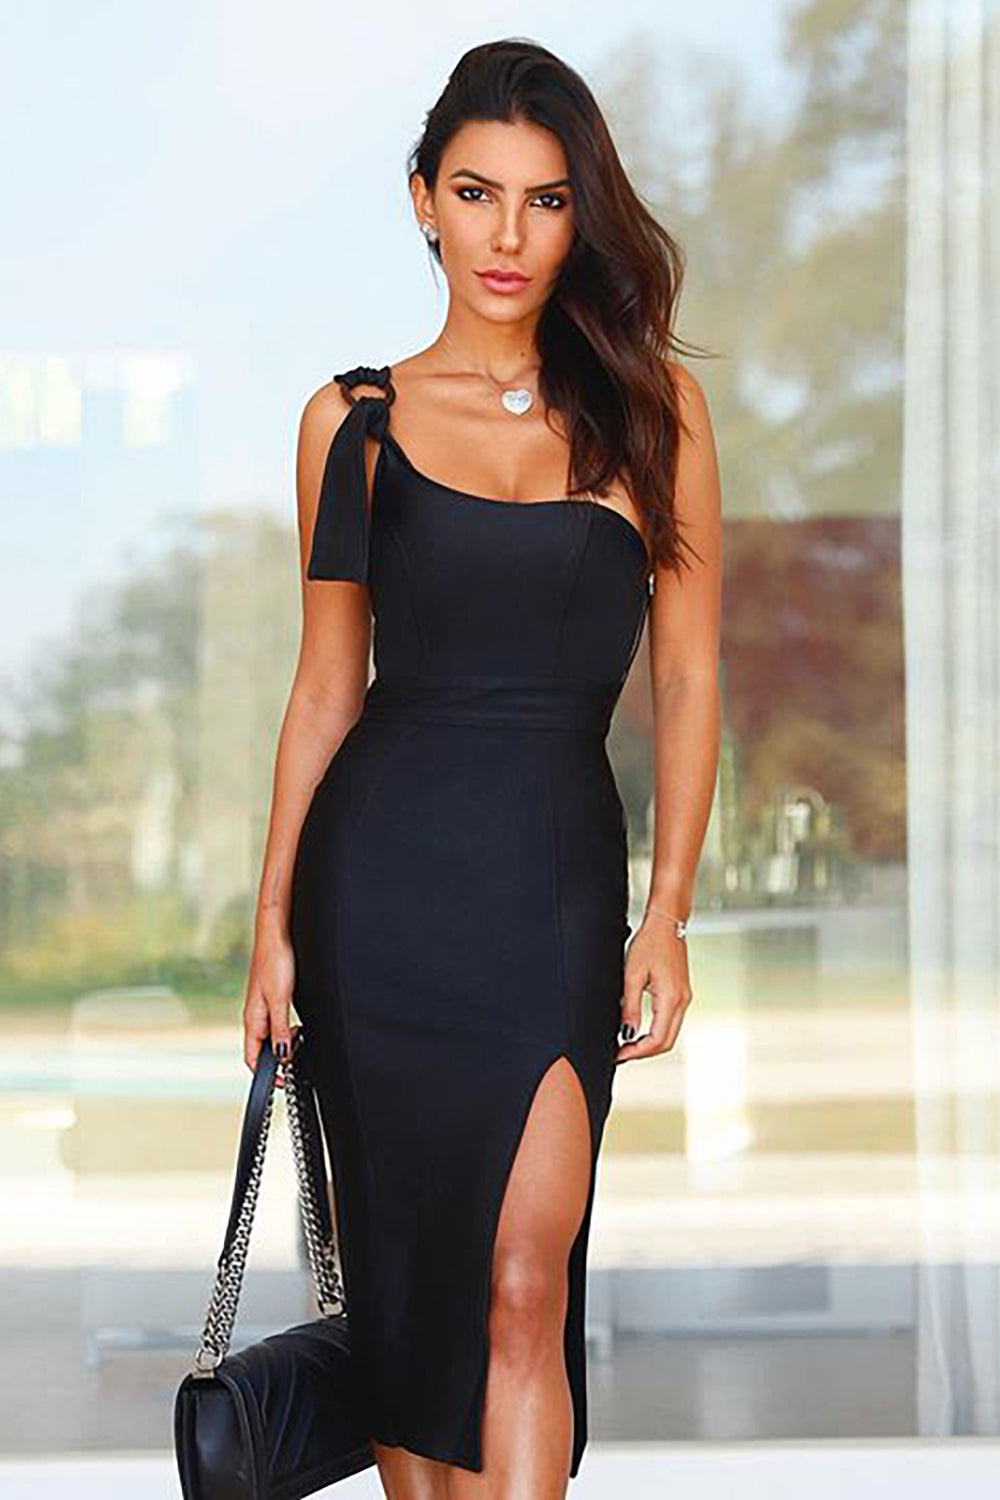 Black One-Shoulder Sleeveless Split Bandage Dress - iulover